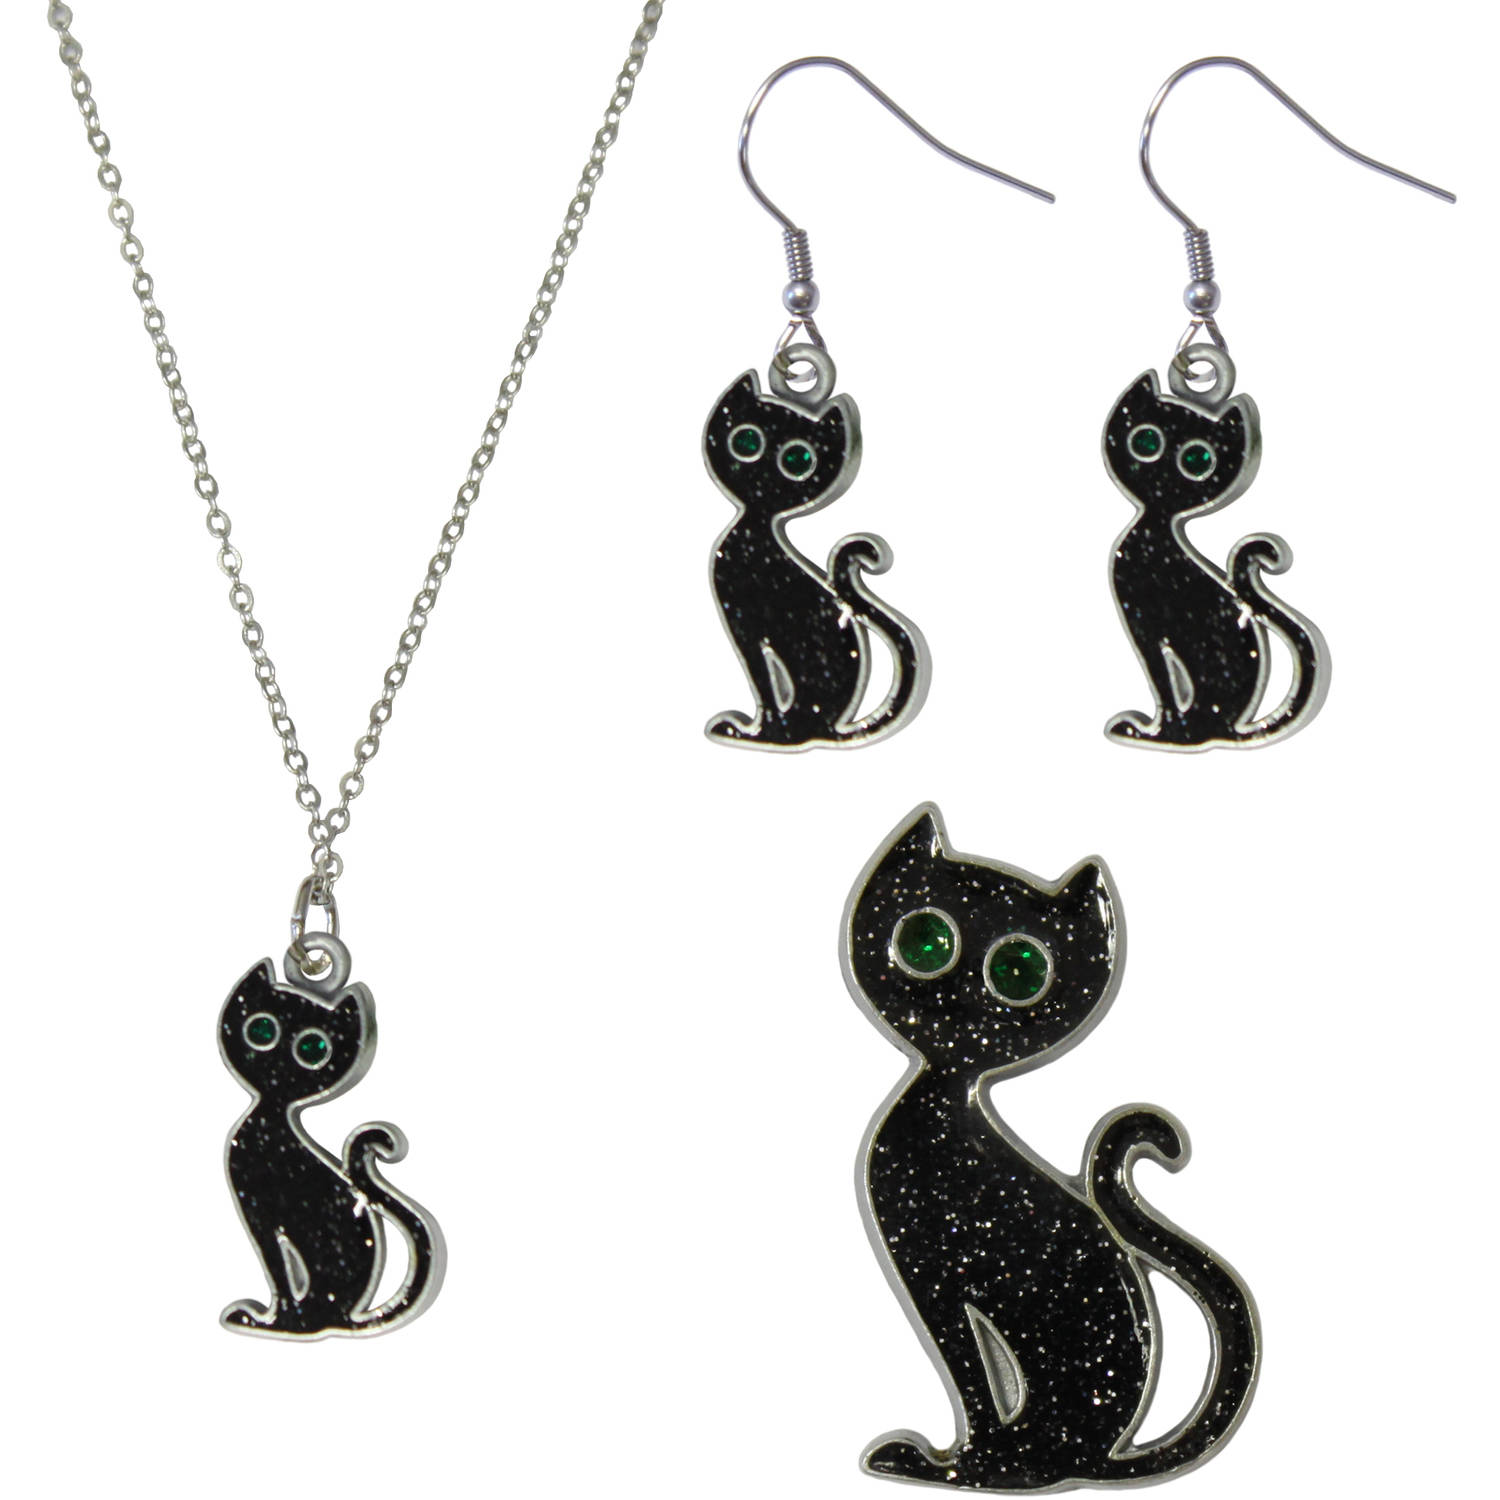 Gloria Duchin Black Cat Necklace, Earrings and Pin Jewelry Set